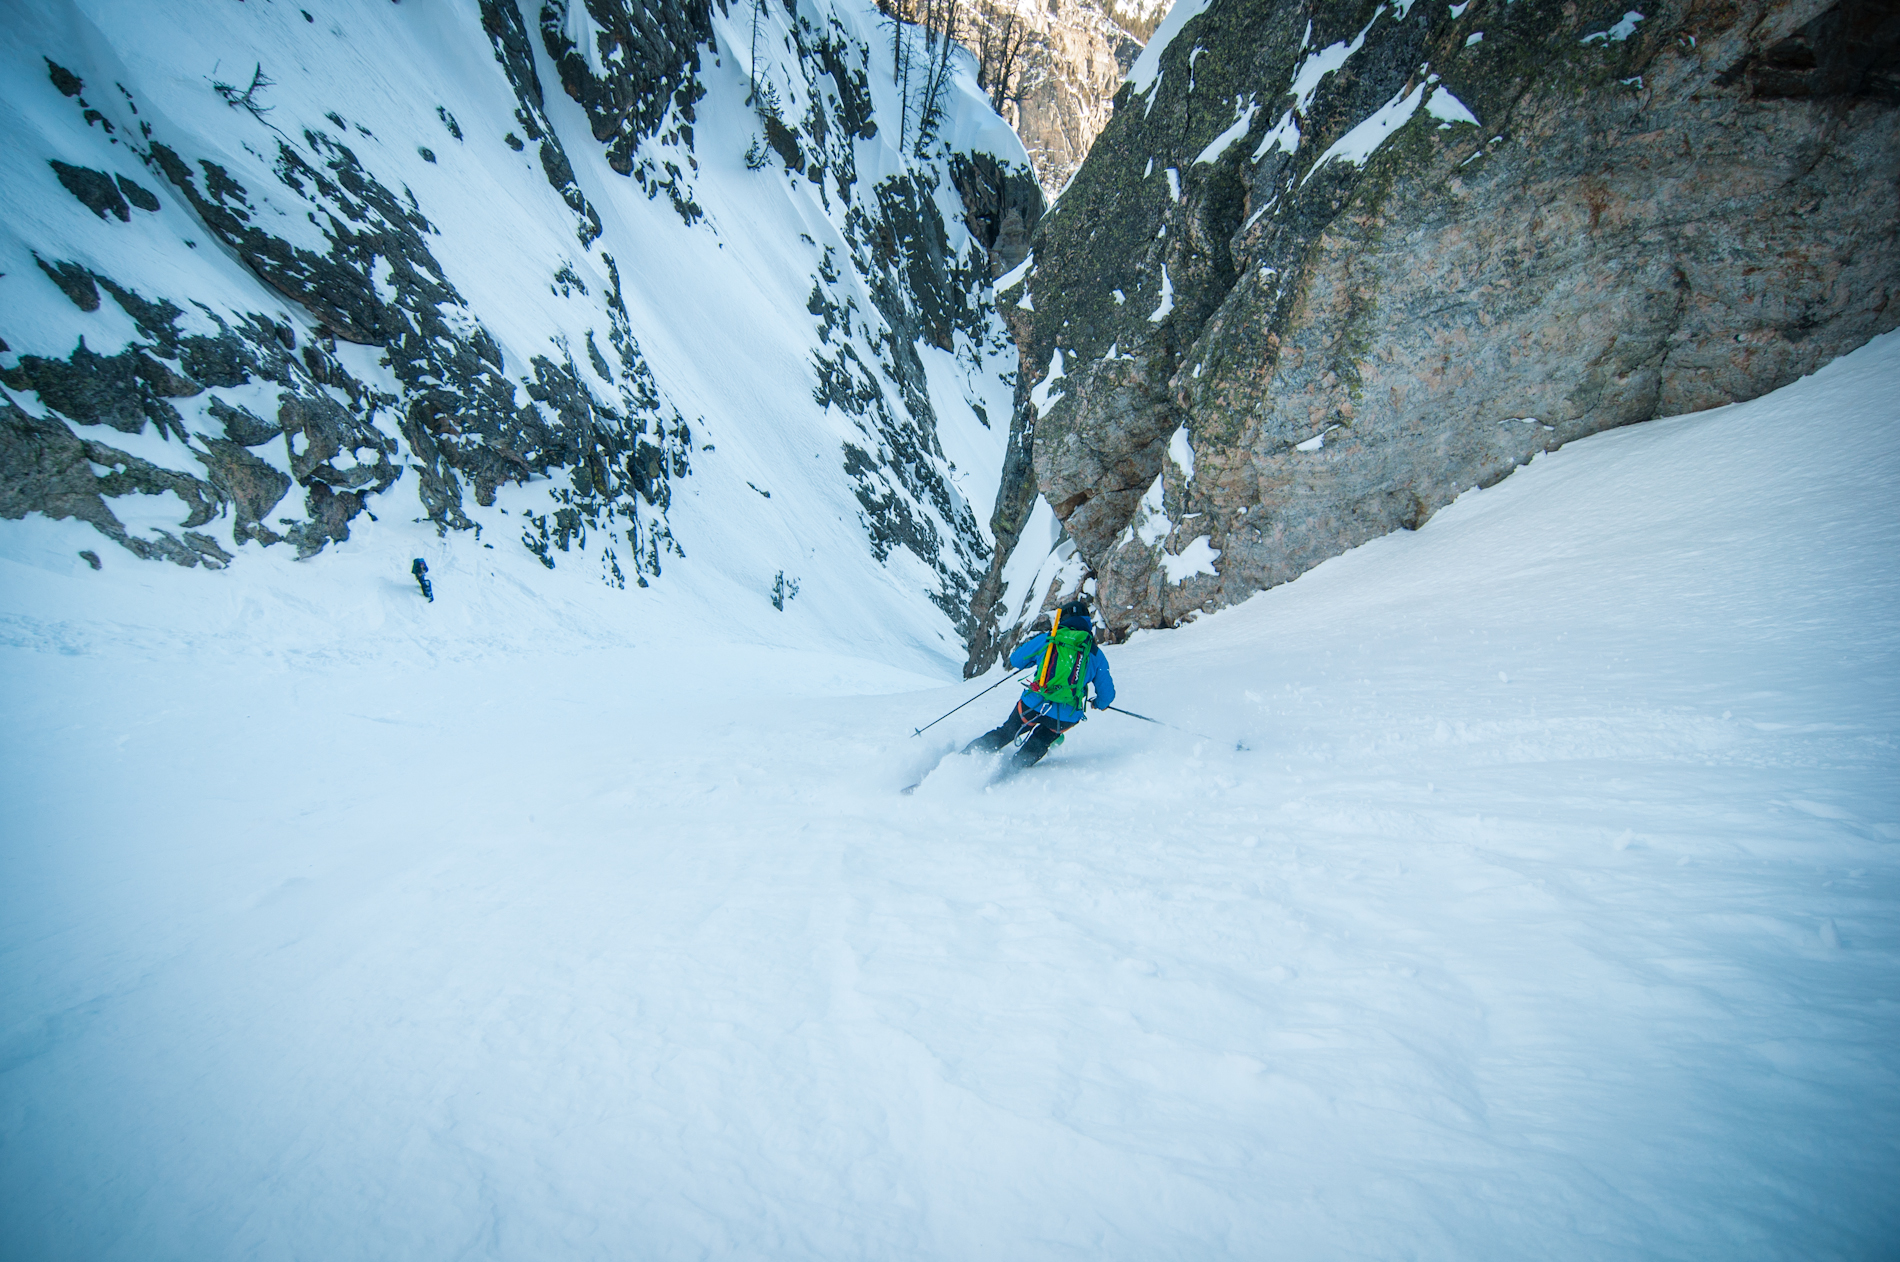 Grand Teton National Park and Prospector Mountain's Apocalypse Couloir